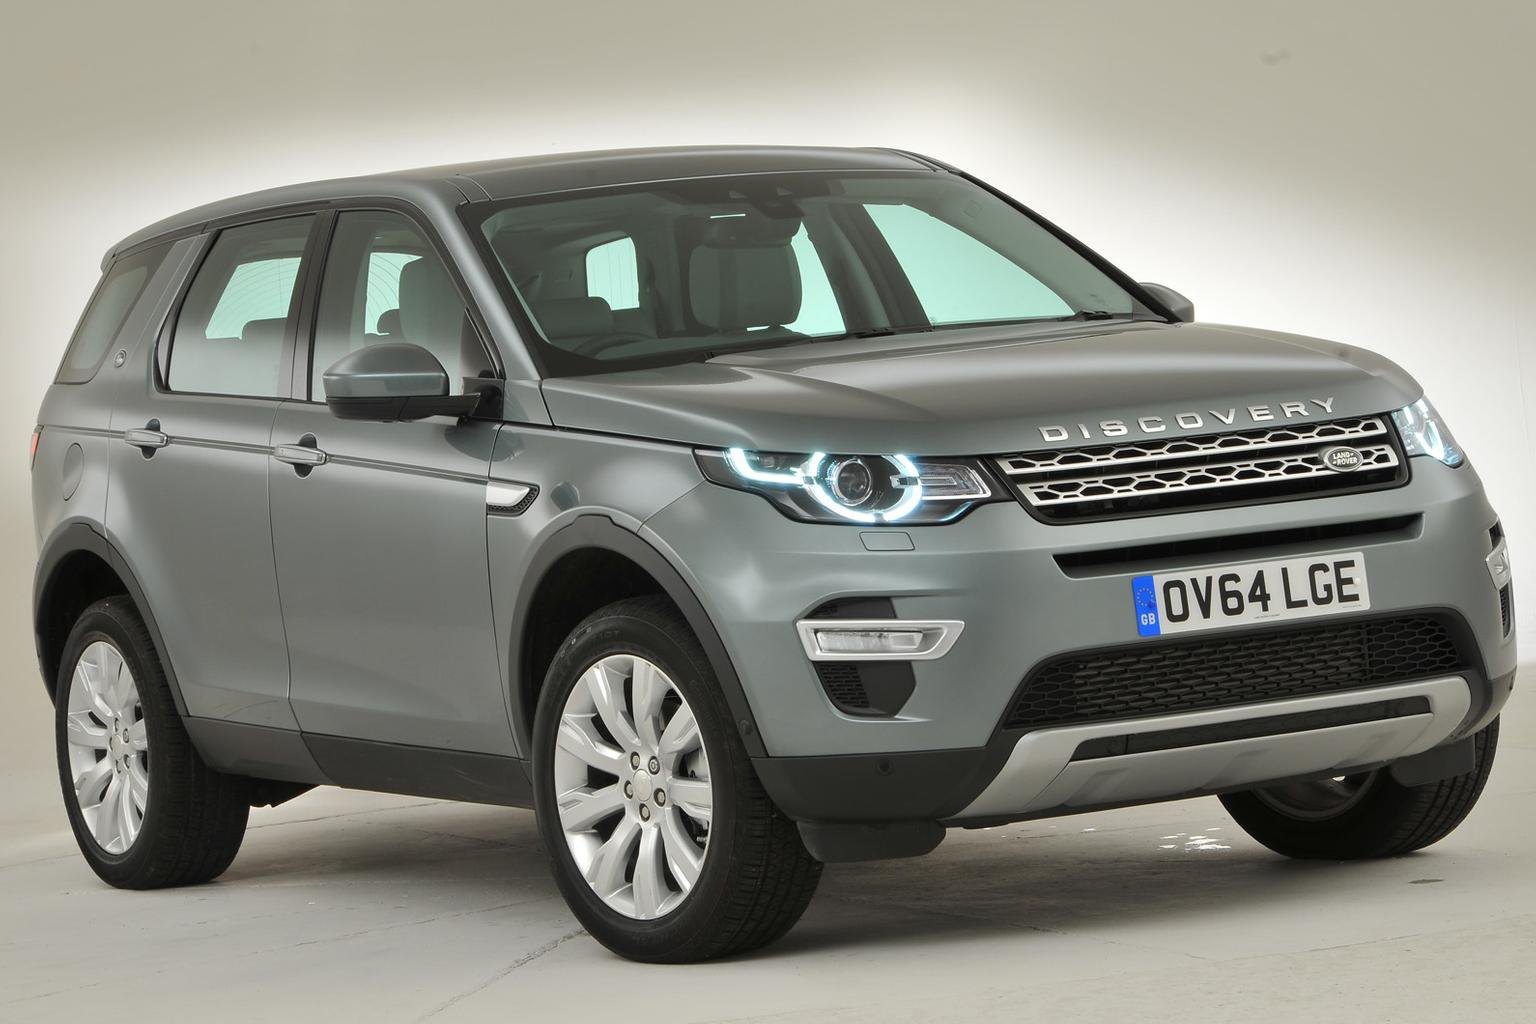 New engines due in September for Land Rover Discovery Sport